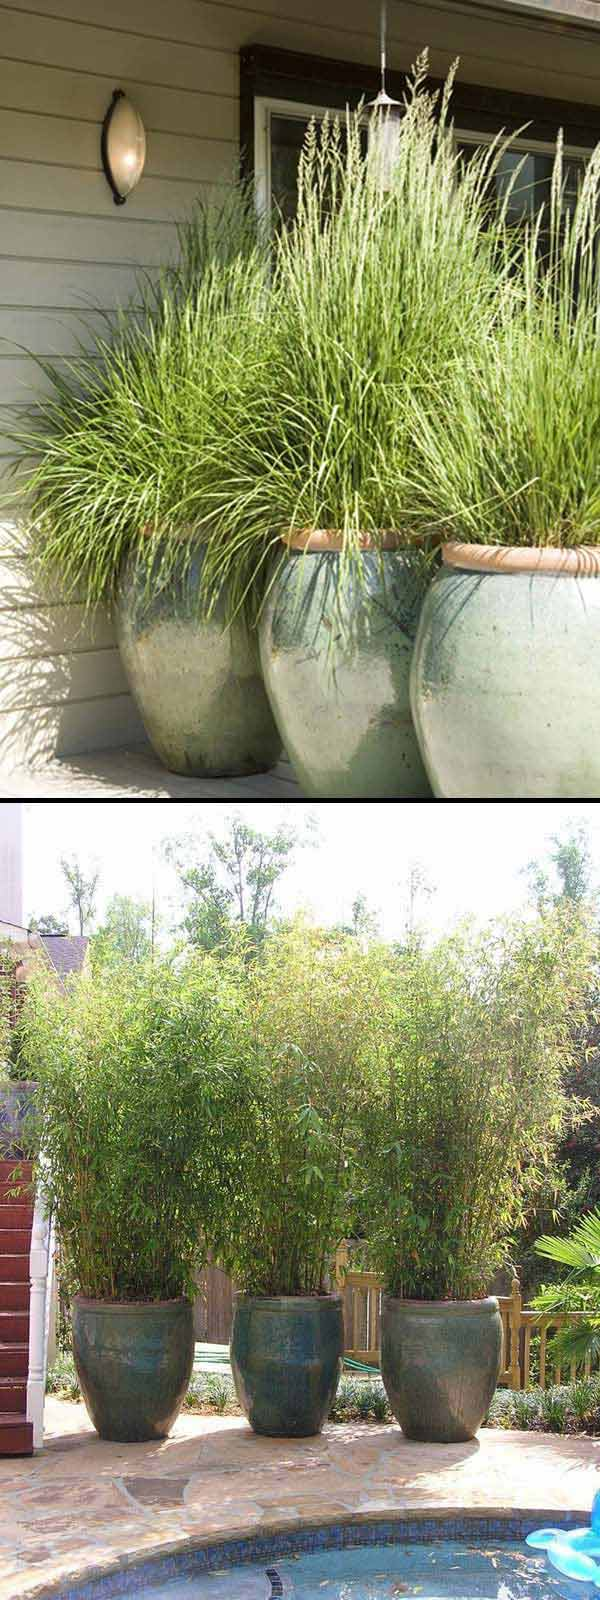 Giant Garden Pots Giant plant pots for trees garden ideas make a tree look like a make a large pot project for garden and yard amazing diy interior workwithnaturefo